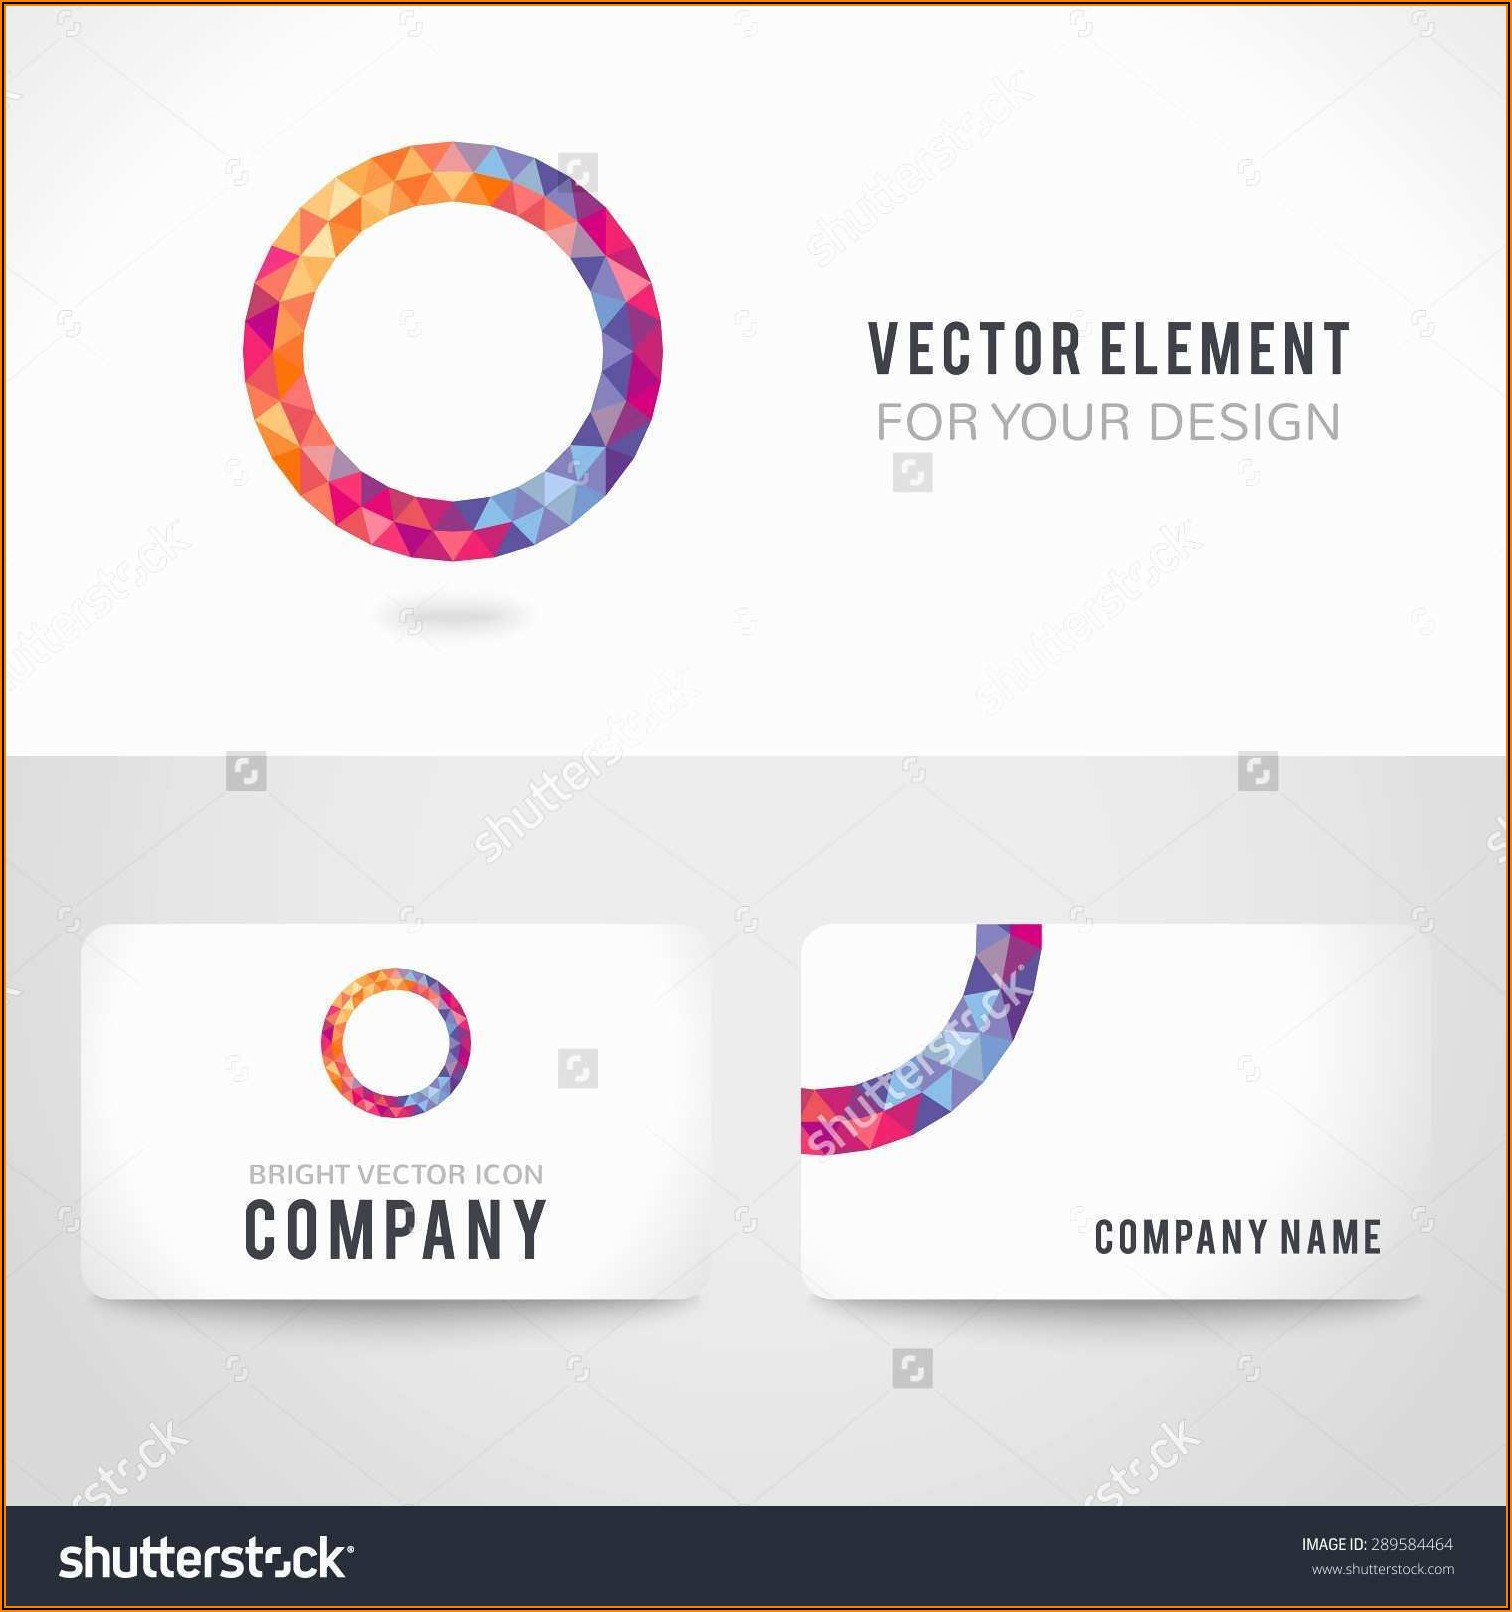 Royal Brites Business Cards Template